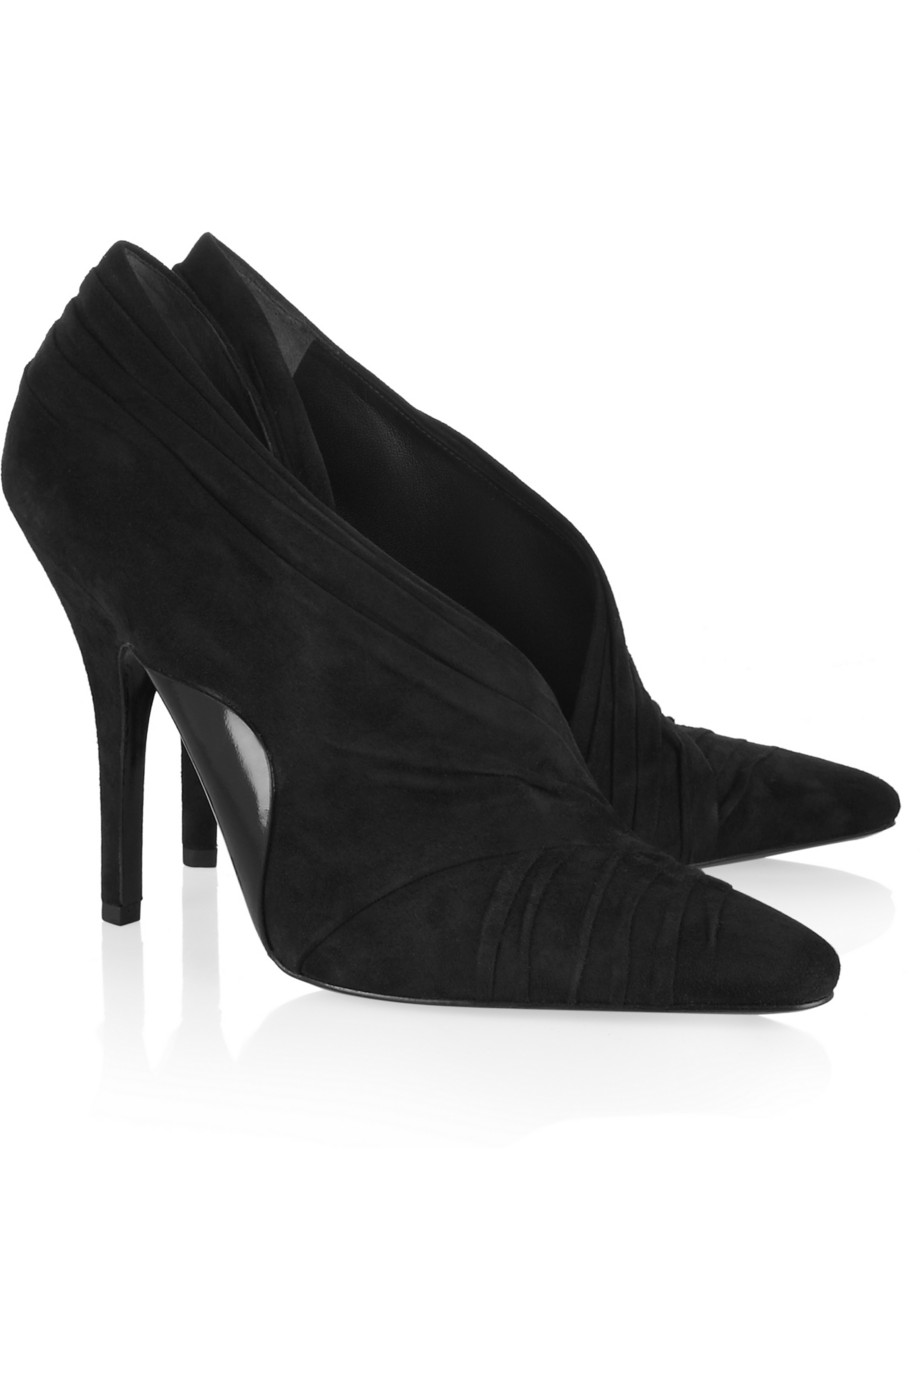 Alexander Wang Marcelia suede pumps – 60% at THE OUTNET.COM